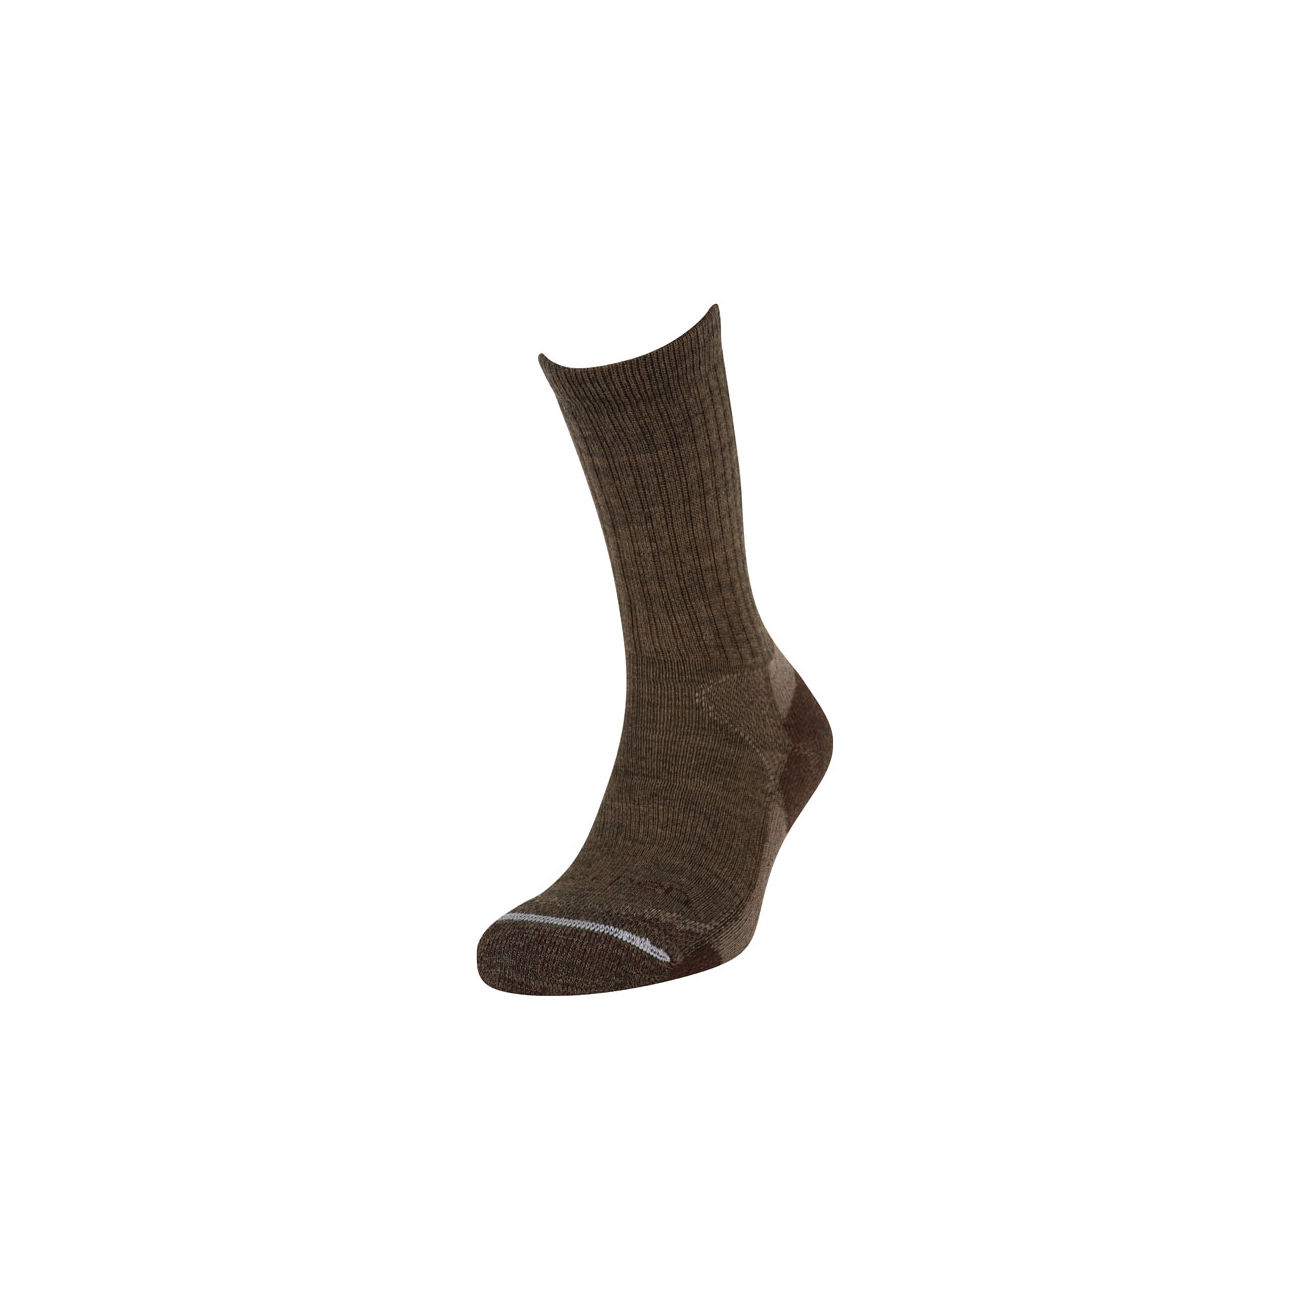 Lorpen Socken All Season Hunt braun 0